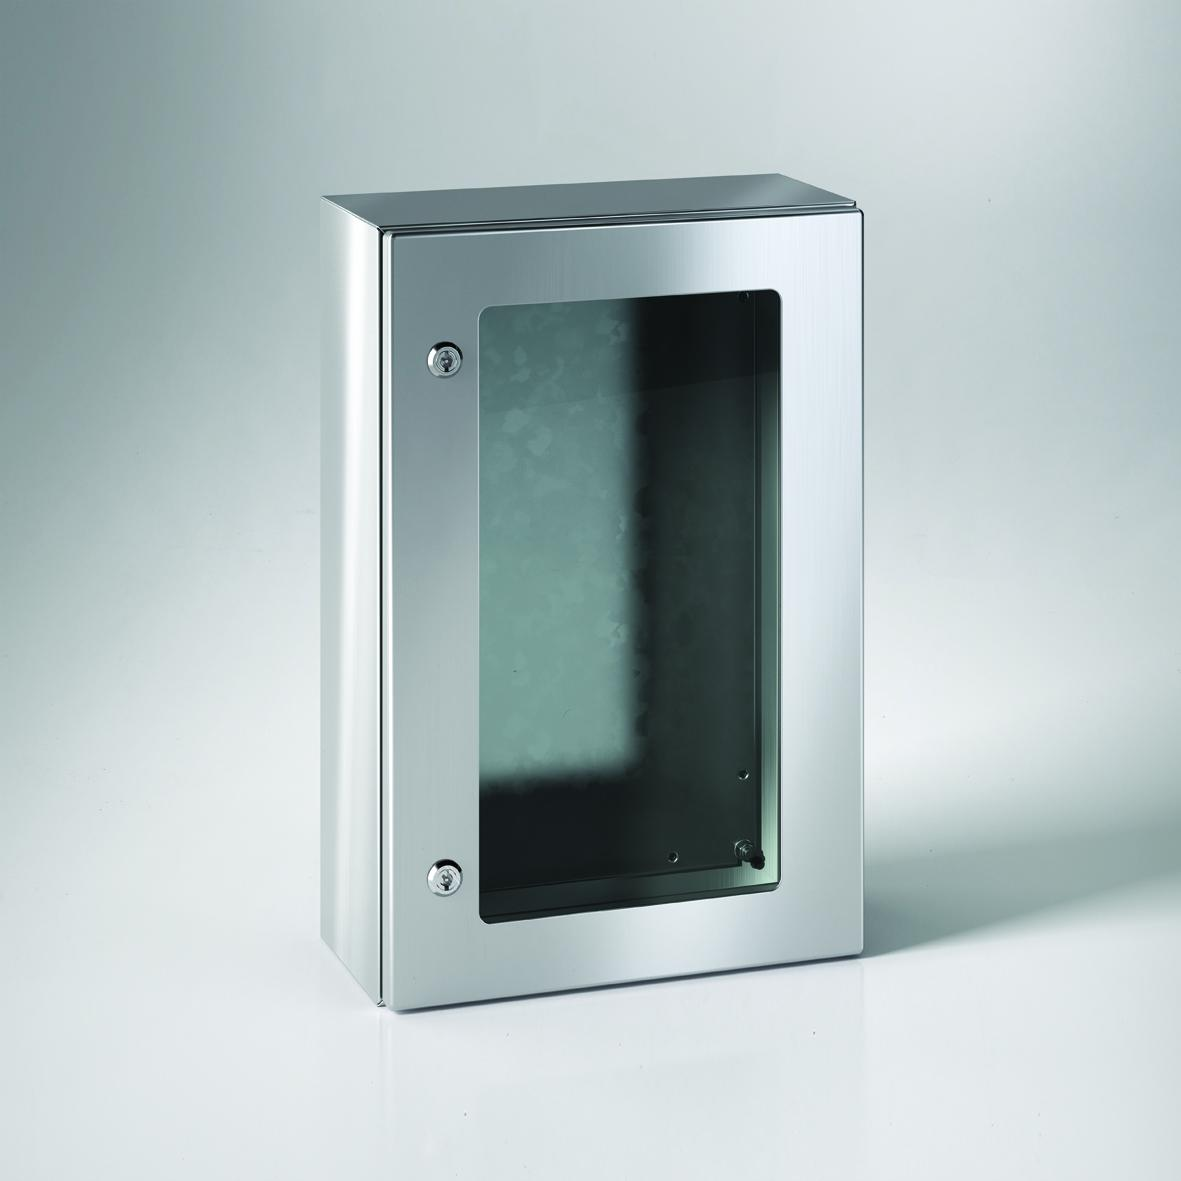 The enclosure doors benefit from reversible hinging, for flexible operation, and offer secure locking mechanisms with transparent window pane options available